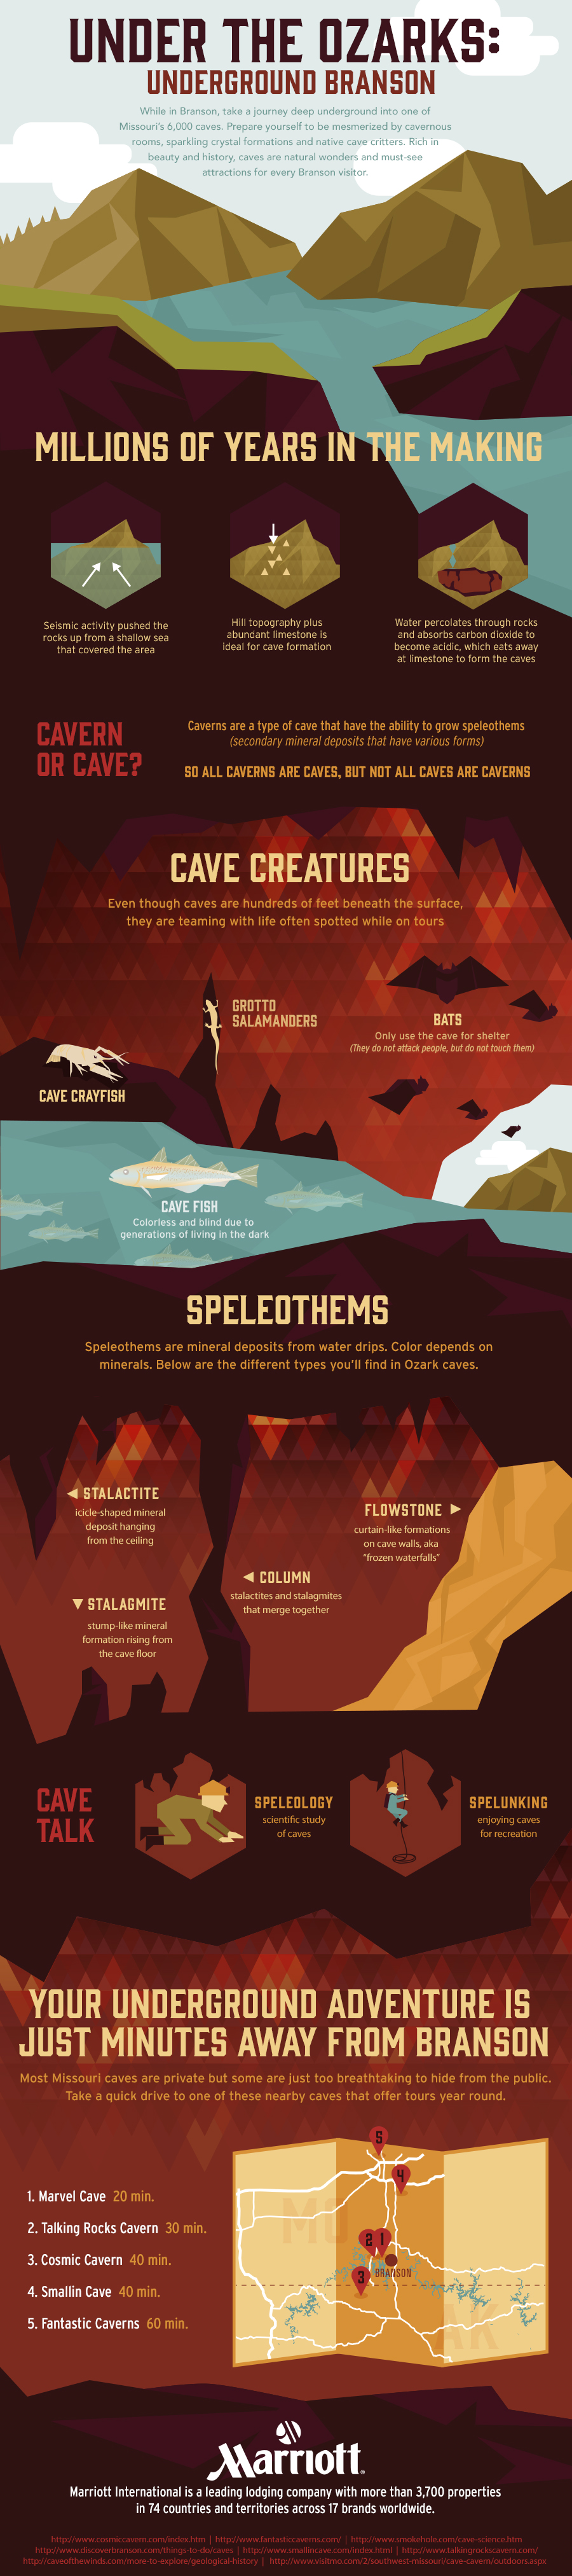 Under The Ozarks: Cave Facts